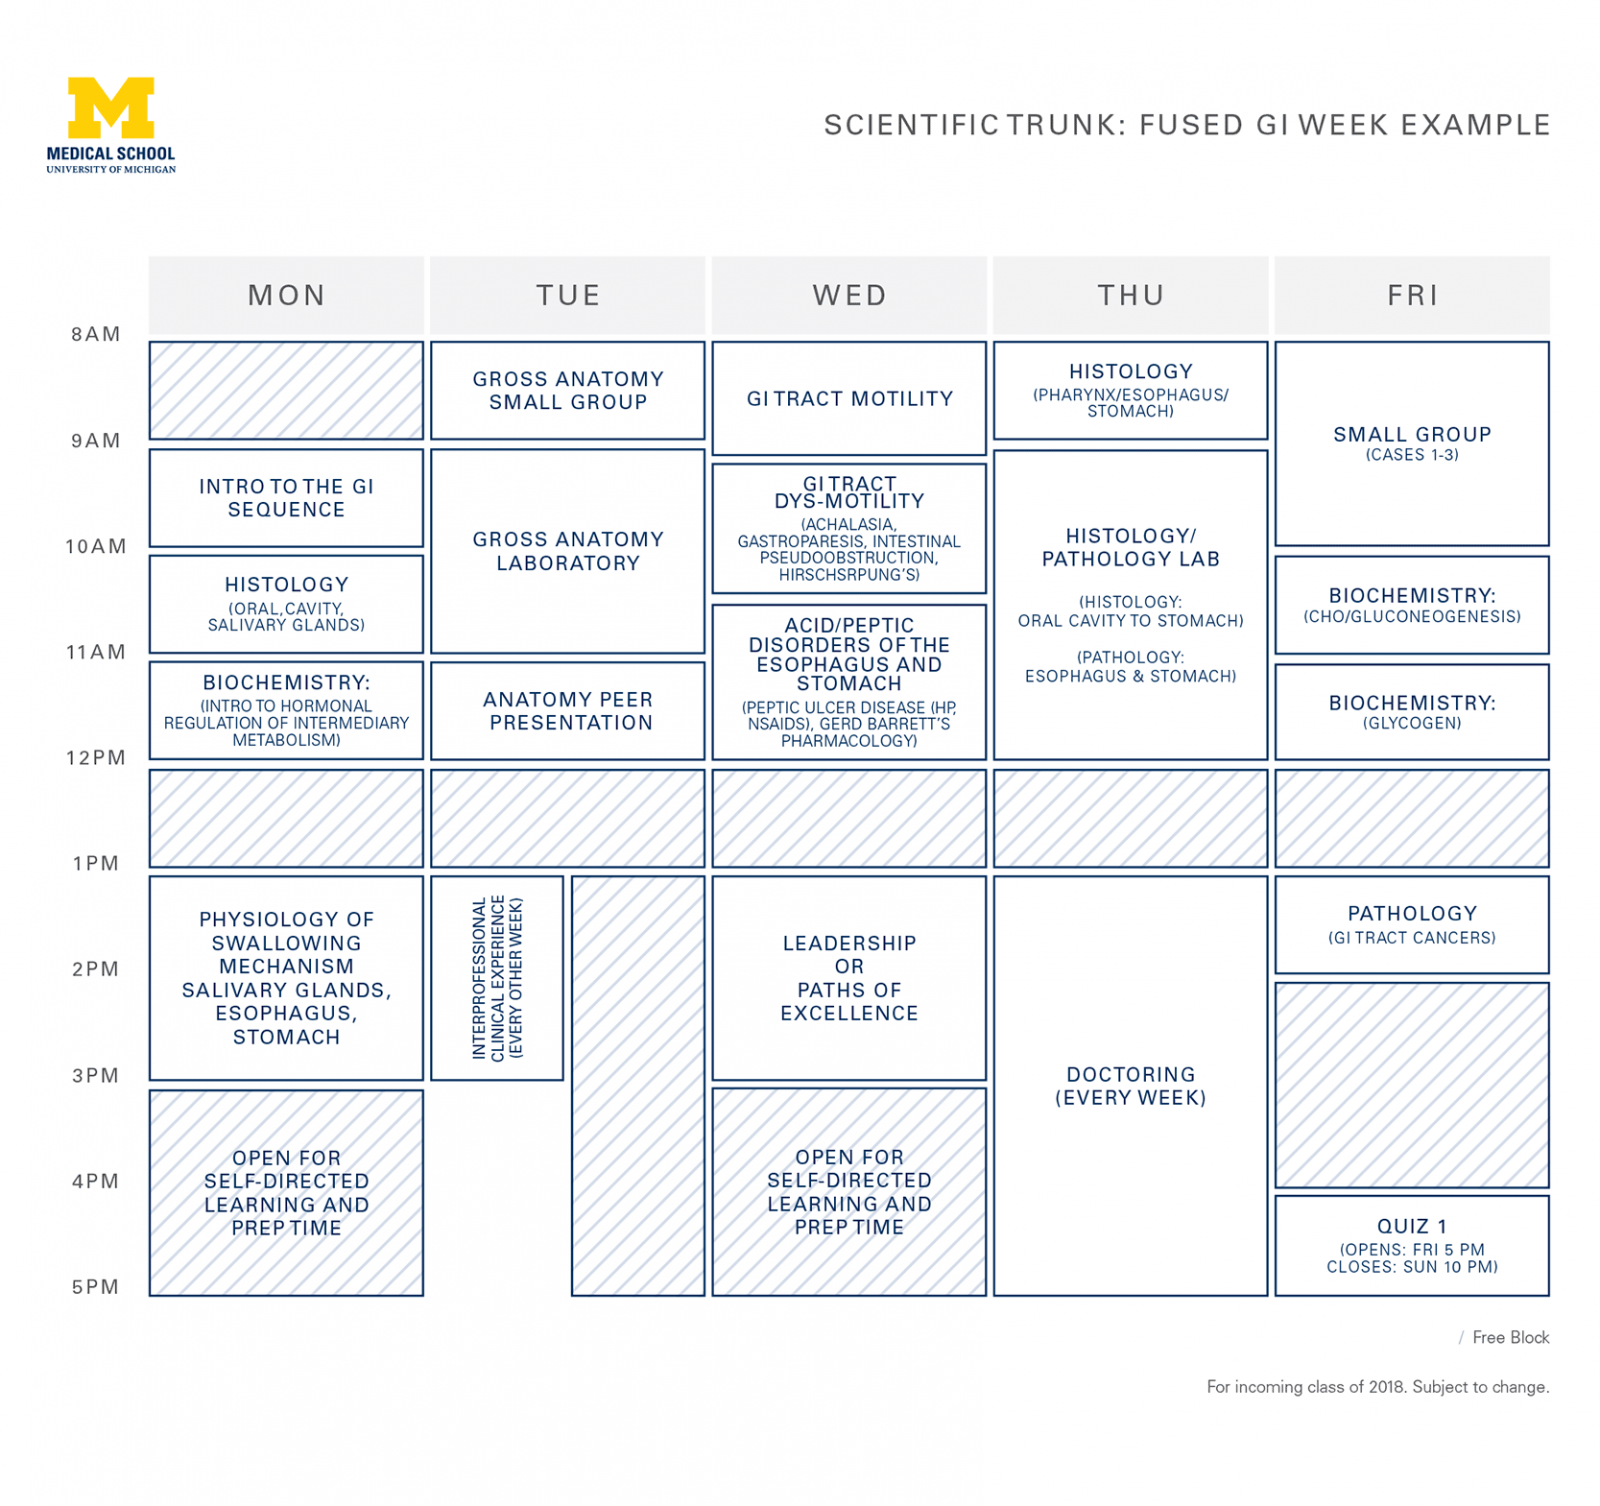 Year 1 university of michigan medical school please note these diagrams are provided for reference only curriculum details are subject to change updated april 2018 spiritdancerdesigns Image collections